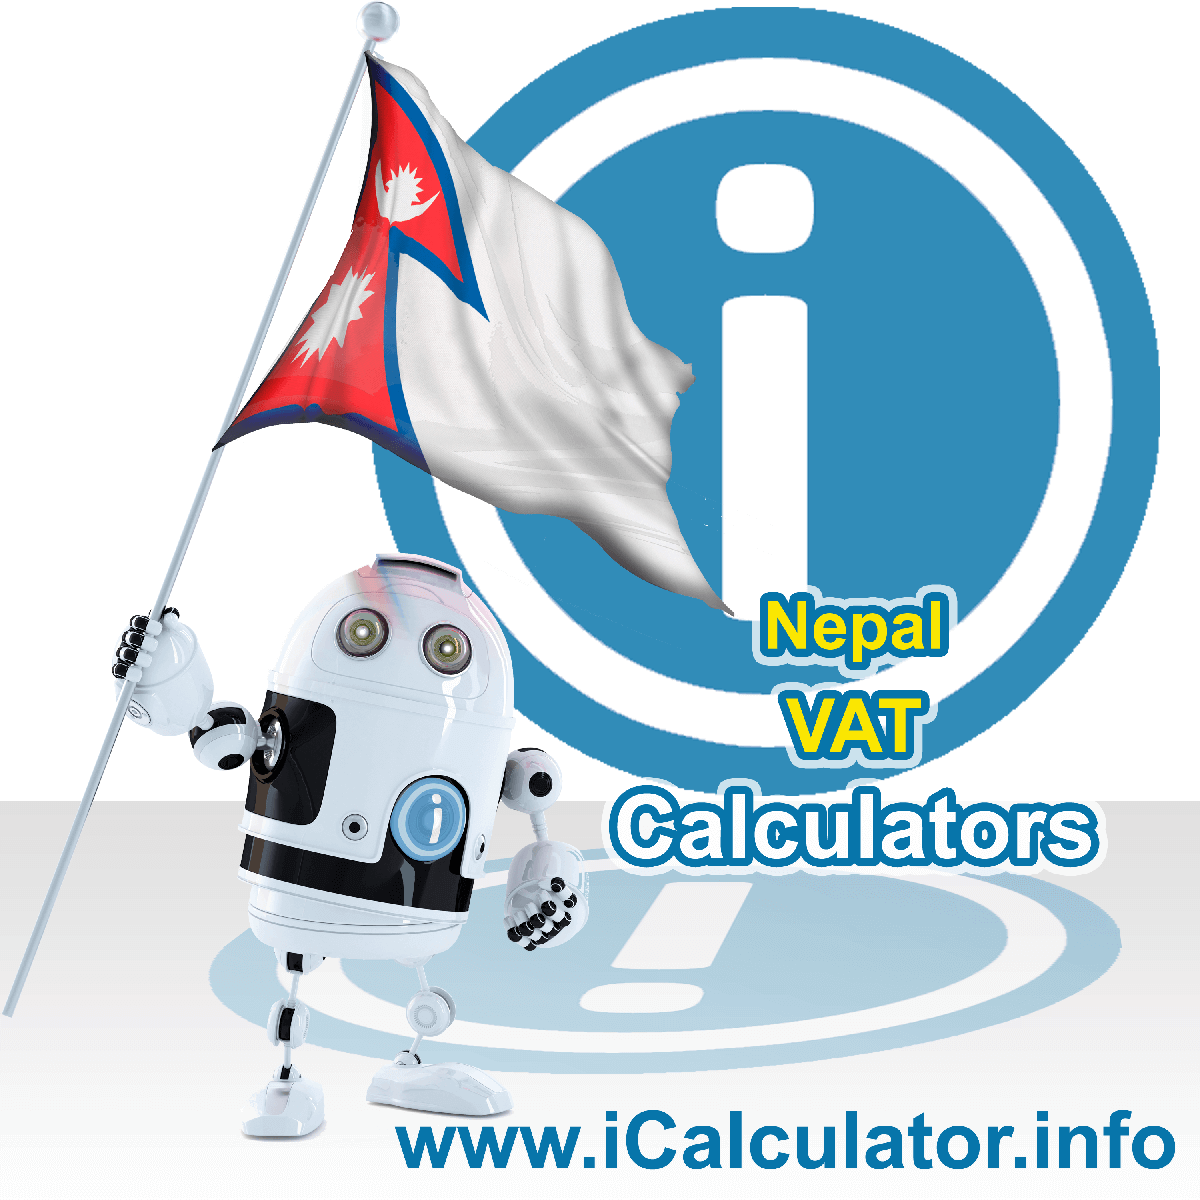 Nepal VAT Calculator. This image shows the Nepal flag and information relating to the VAT formula used for calculating Value Added Tax in Nepal using the Nepal VAT Calculator in 2076